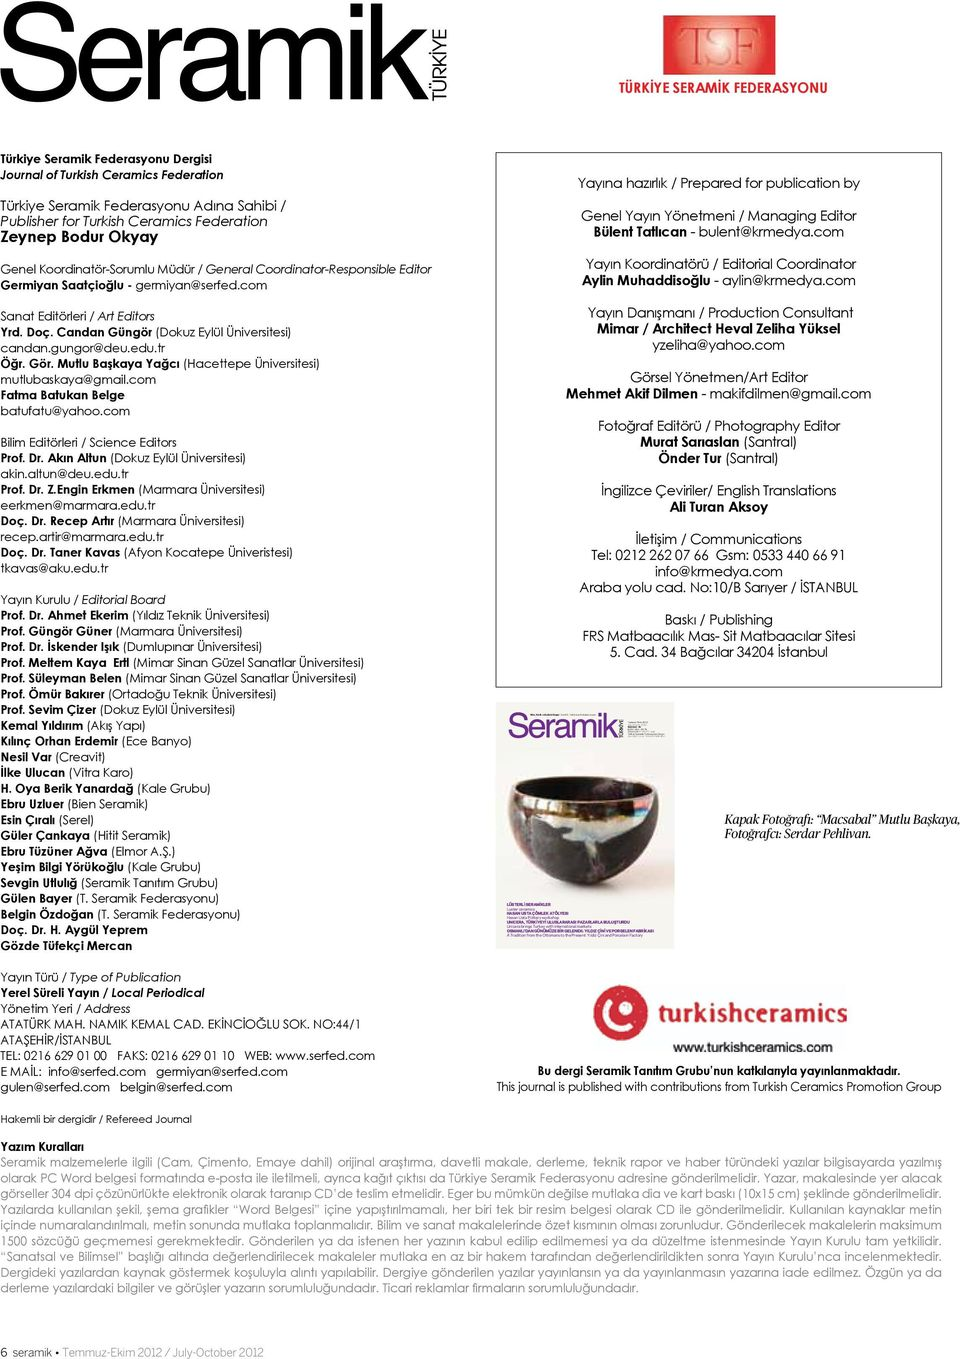 Ceramic Federation TÜRKİYE SERAMİK FEDERASYONU Türkiye Seramik Federasyonu Dergisi Journal of Turkish Ceramics Federation Türkiye Seramik Federasyonu Adına Sahibi / Publisher for Turkish Ceramics